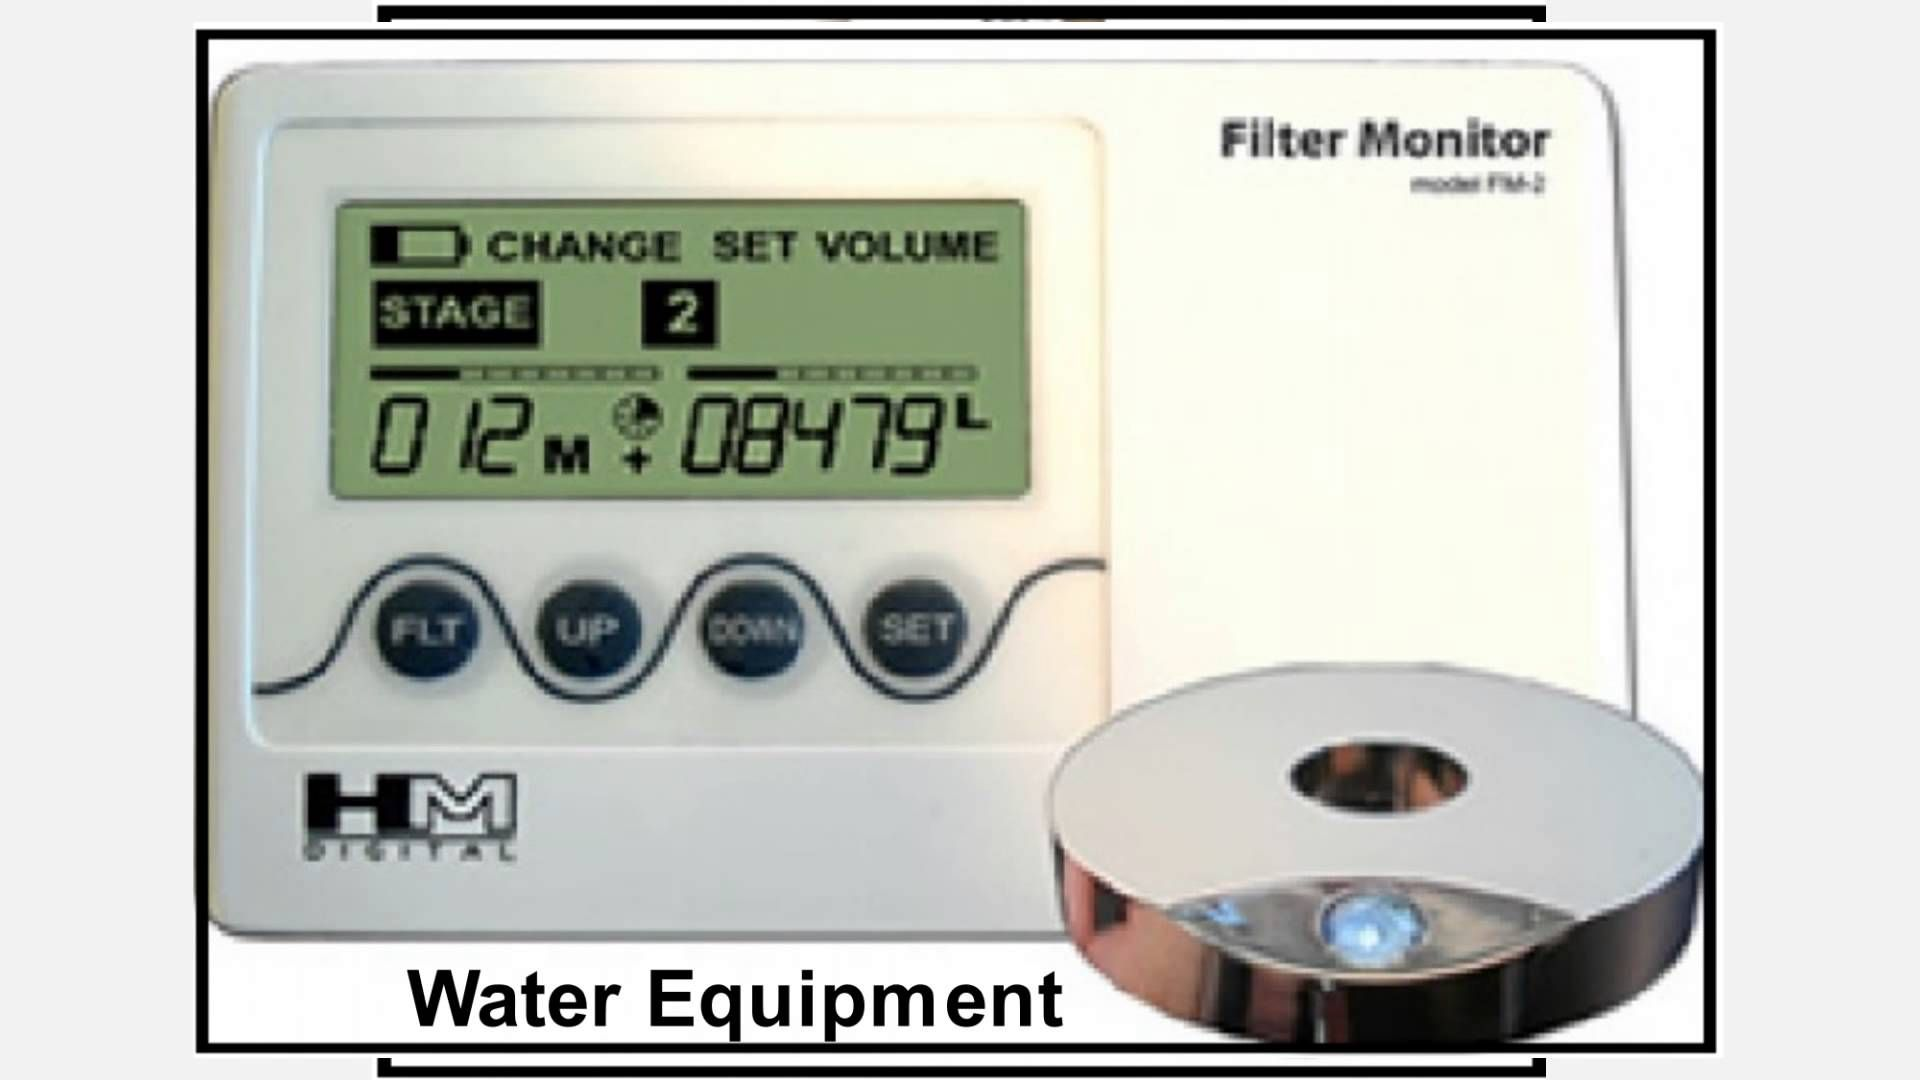 All Water Filtration Products Including But Not Limited To Water Filters Faucets Replacement Parts Water Softeners Media Filters Monitor Water Softener